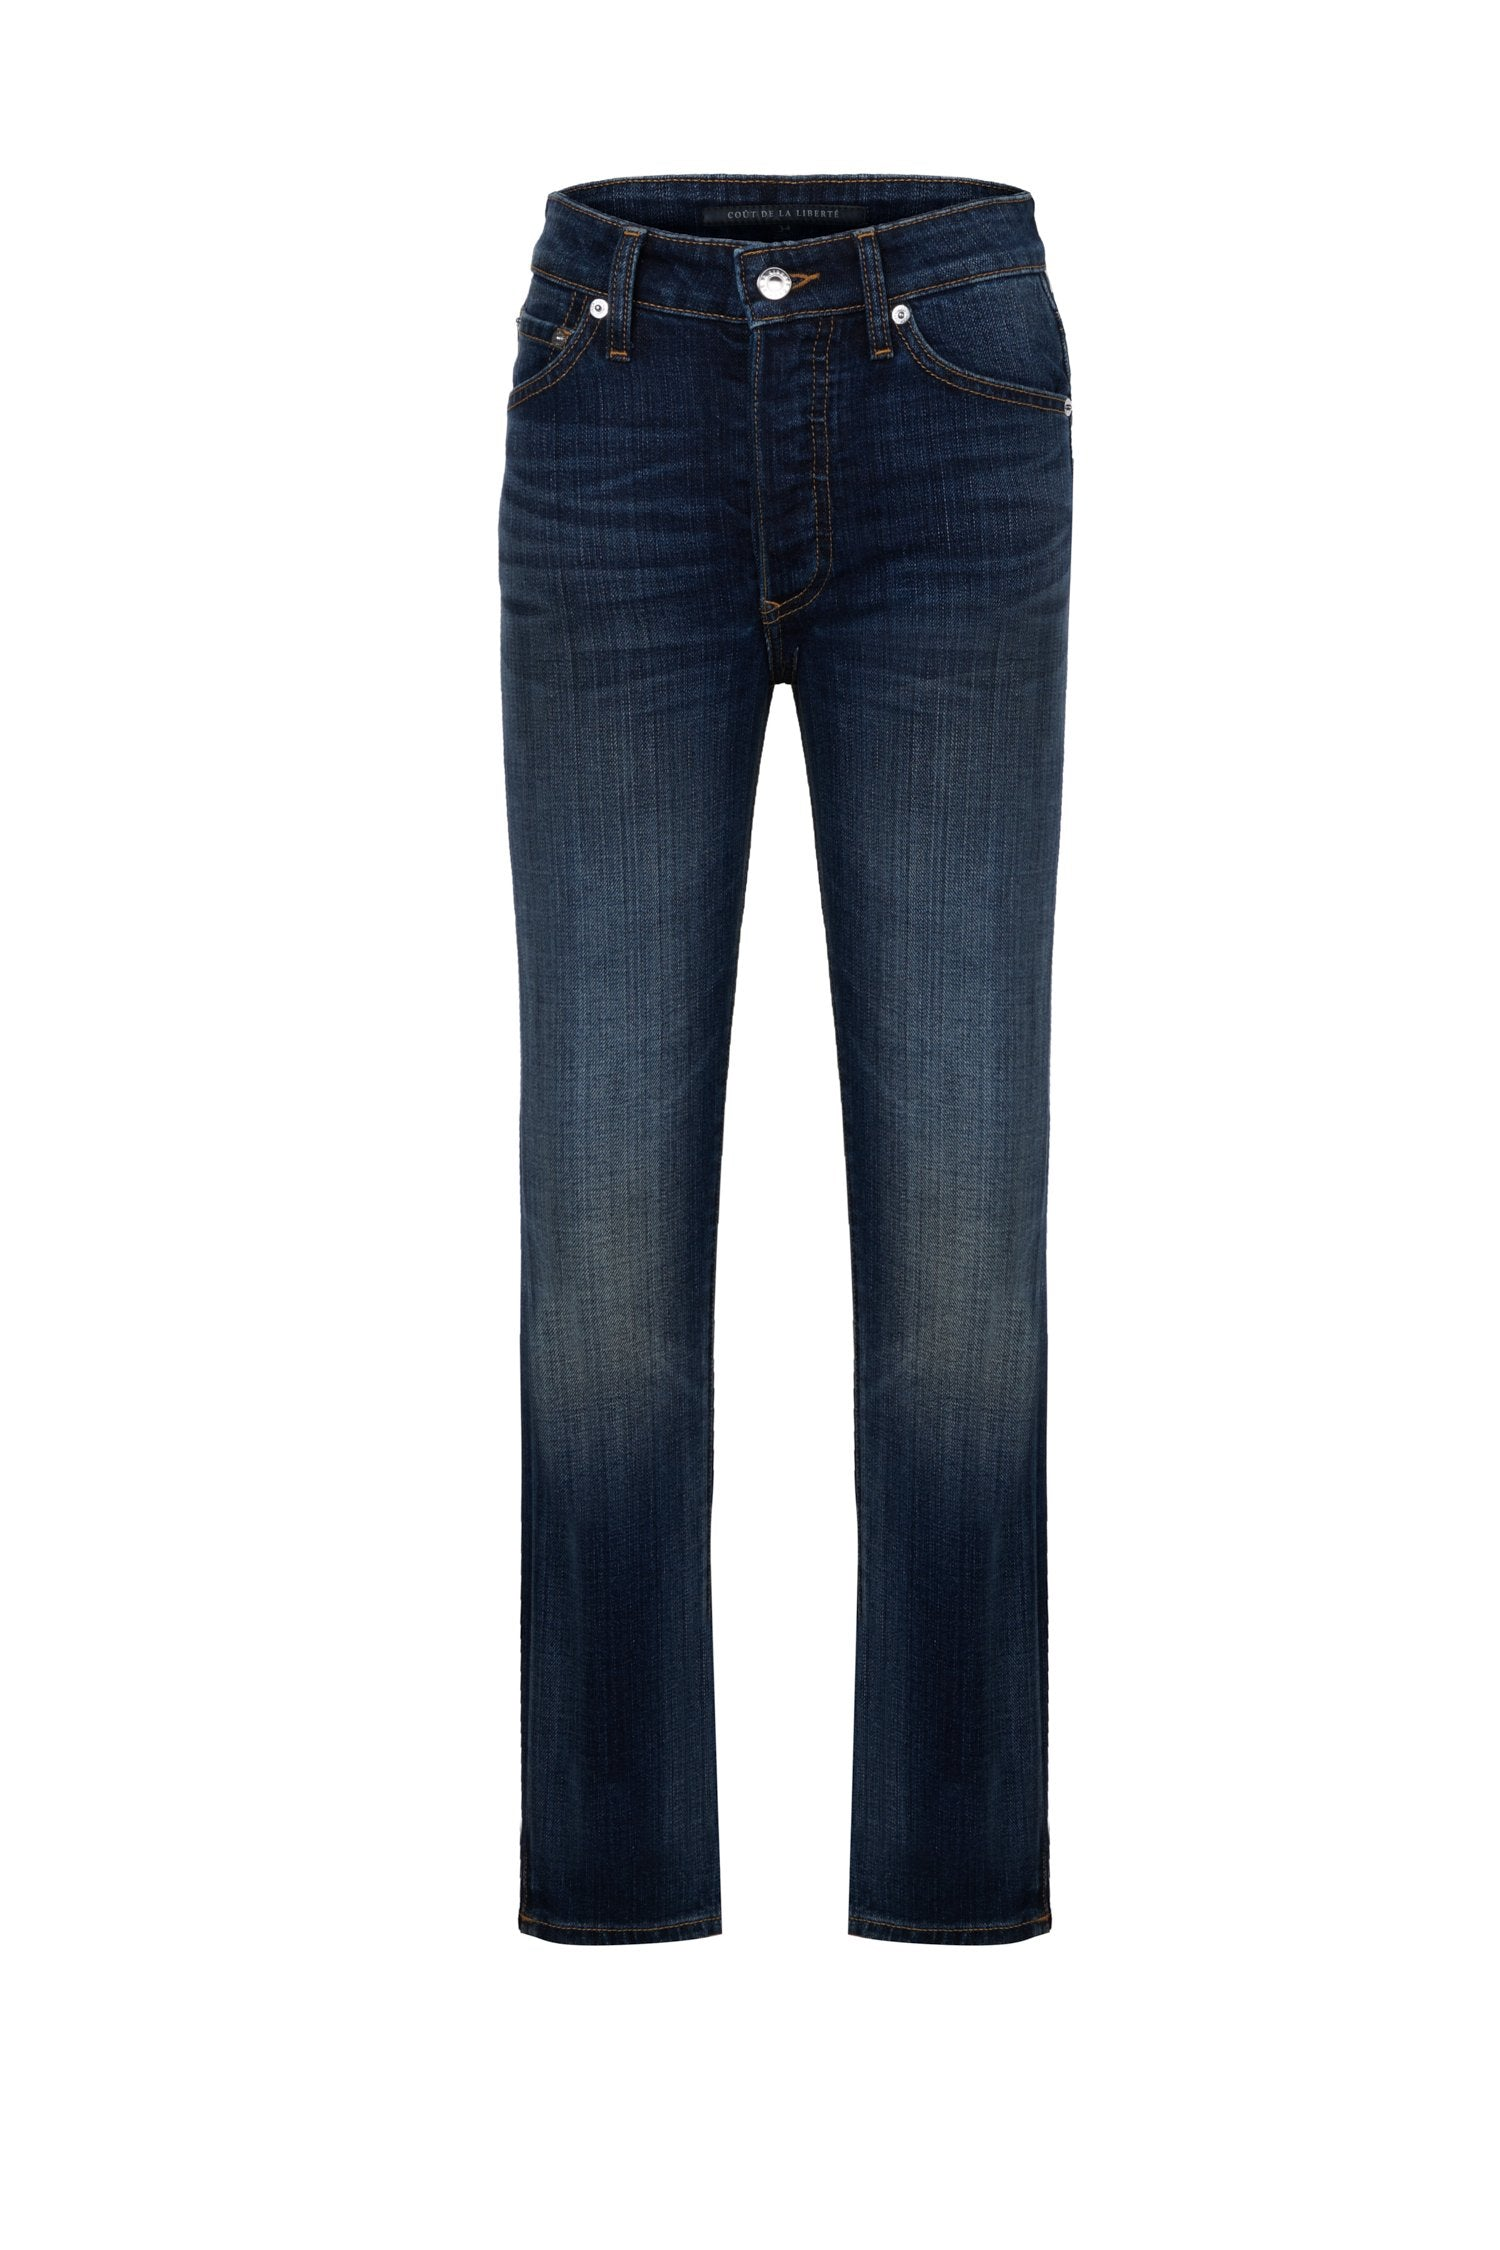 High Rise Skinny Button Fly